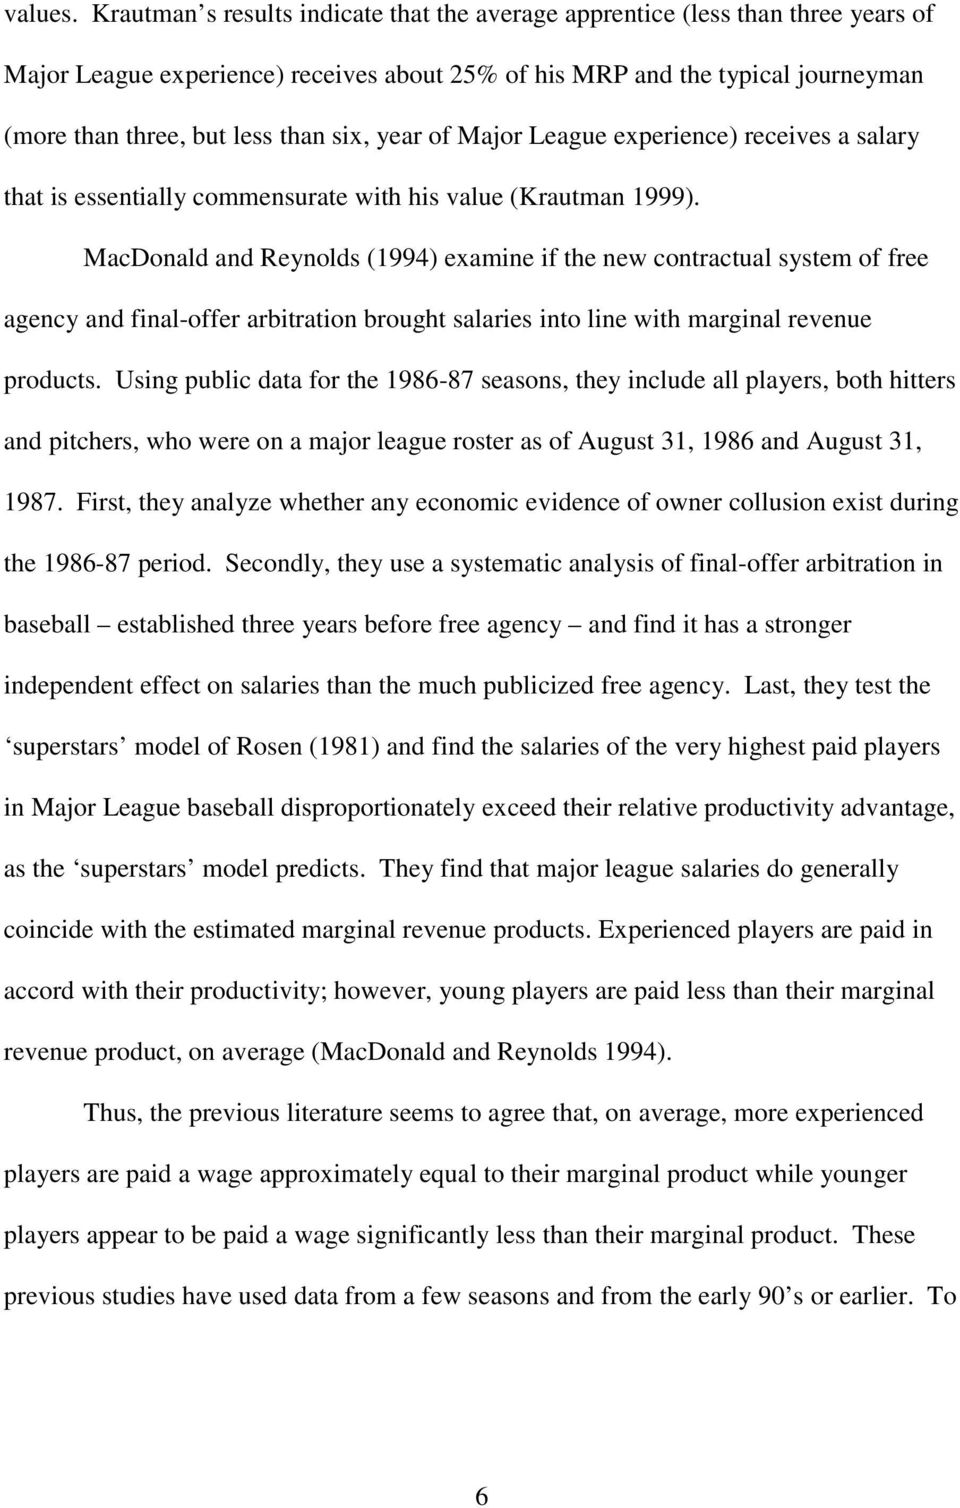 six, year of Major League experience) receives a salary that is essentially commensurate with his value (Krautman 1999).